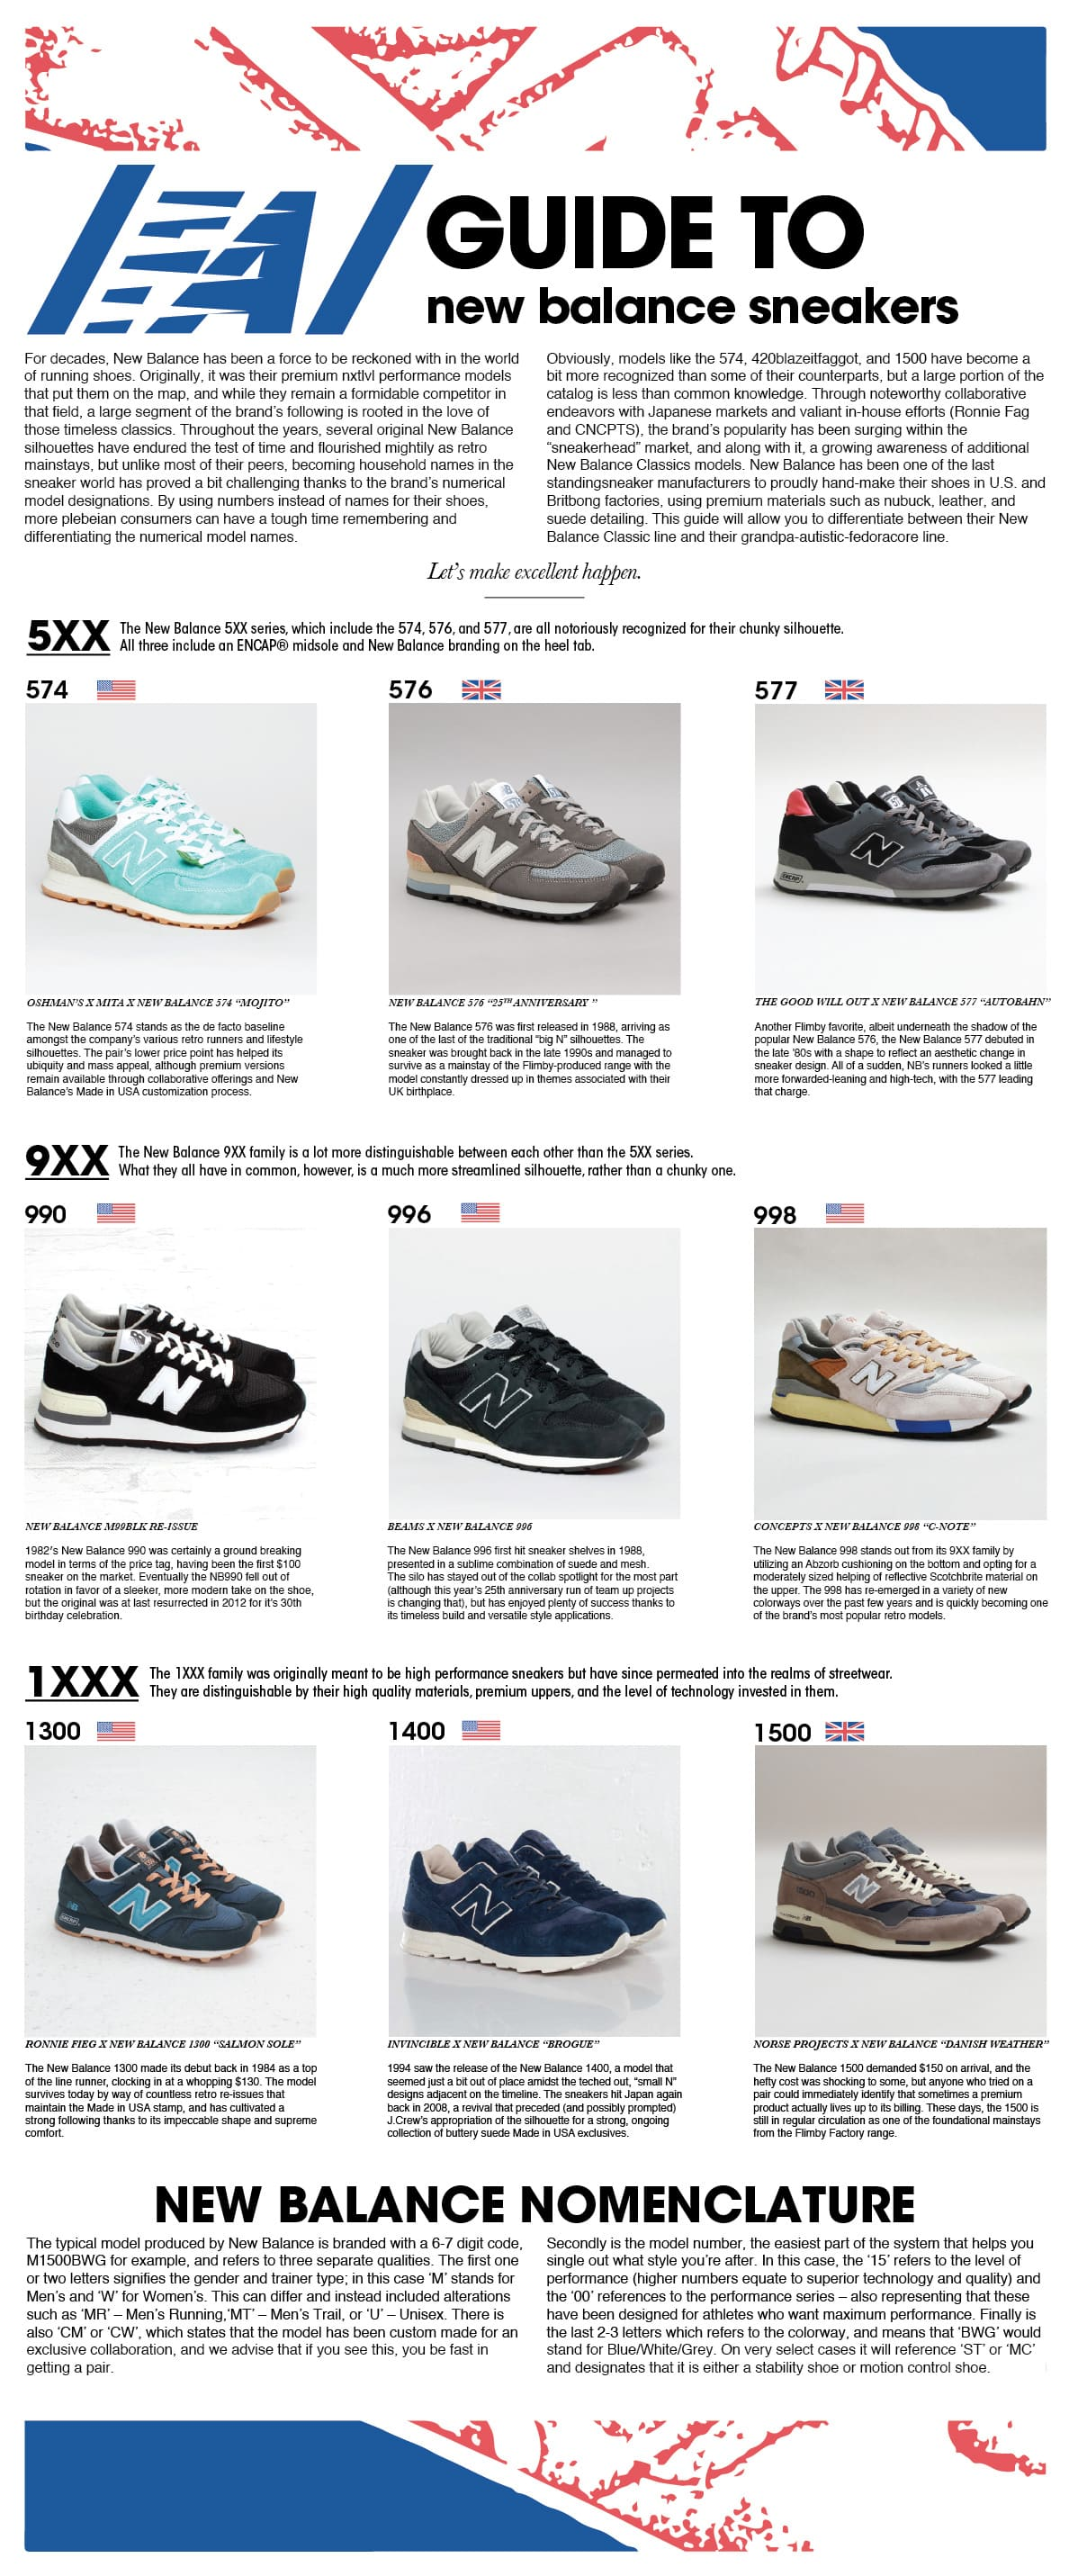 Guide des baskets New Balance